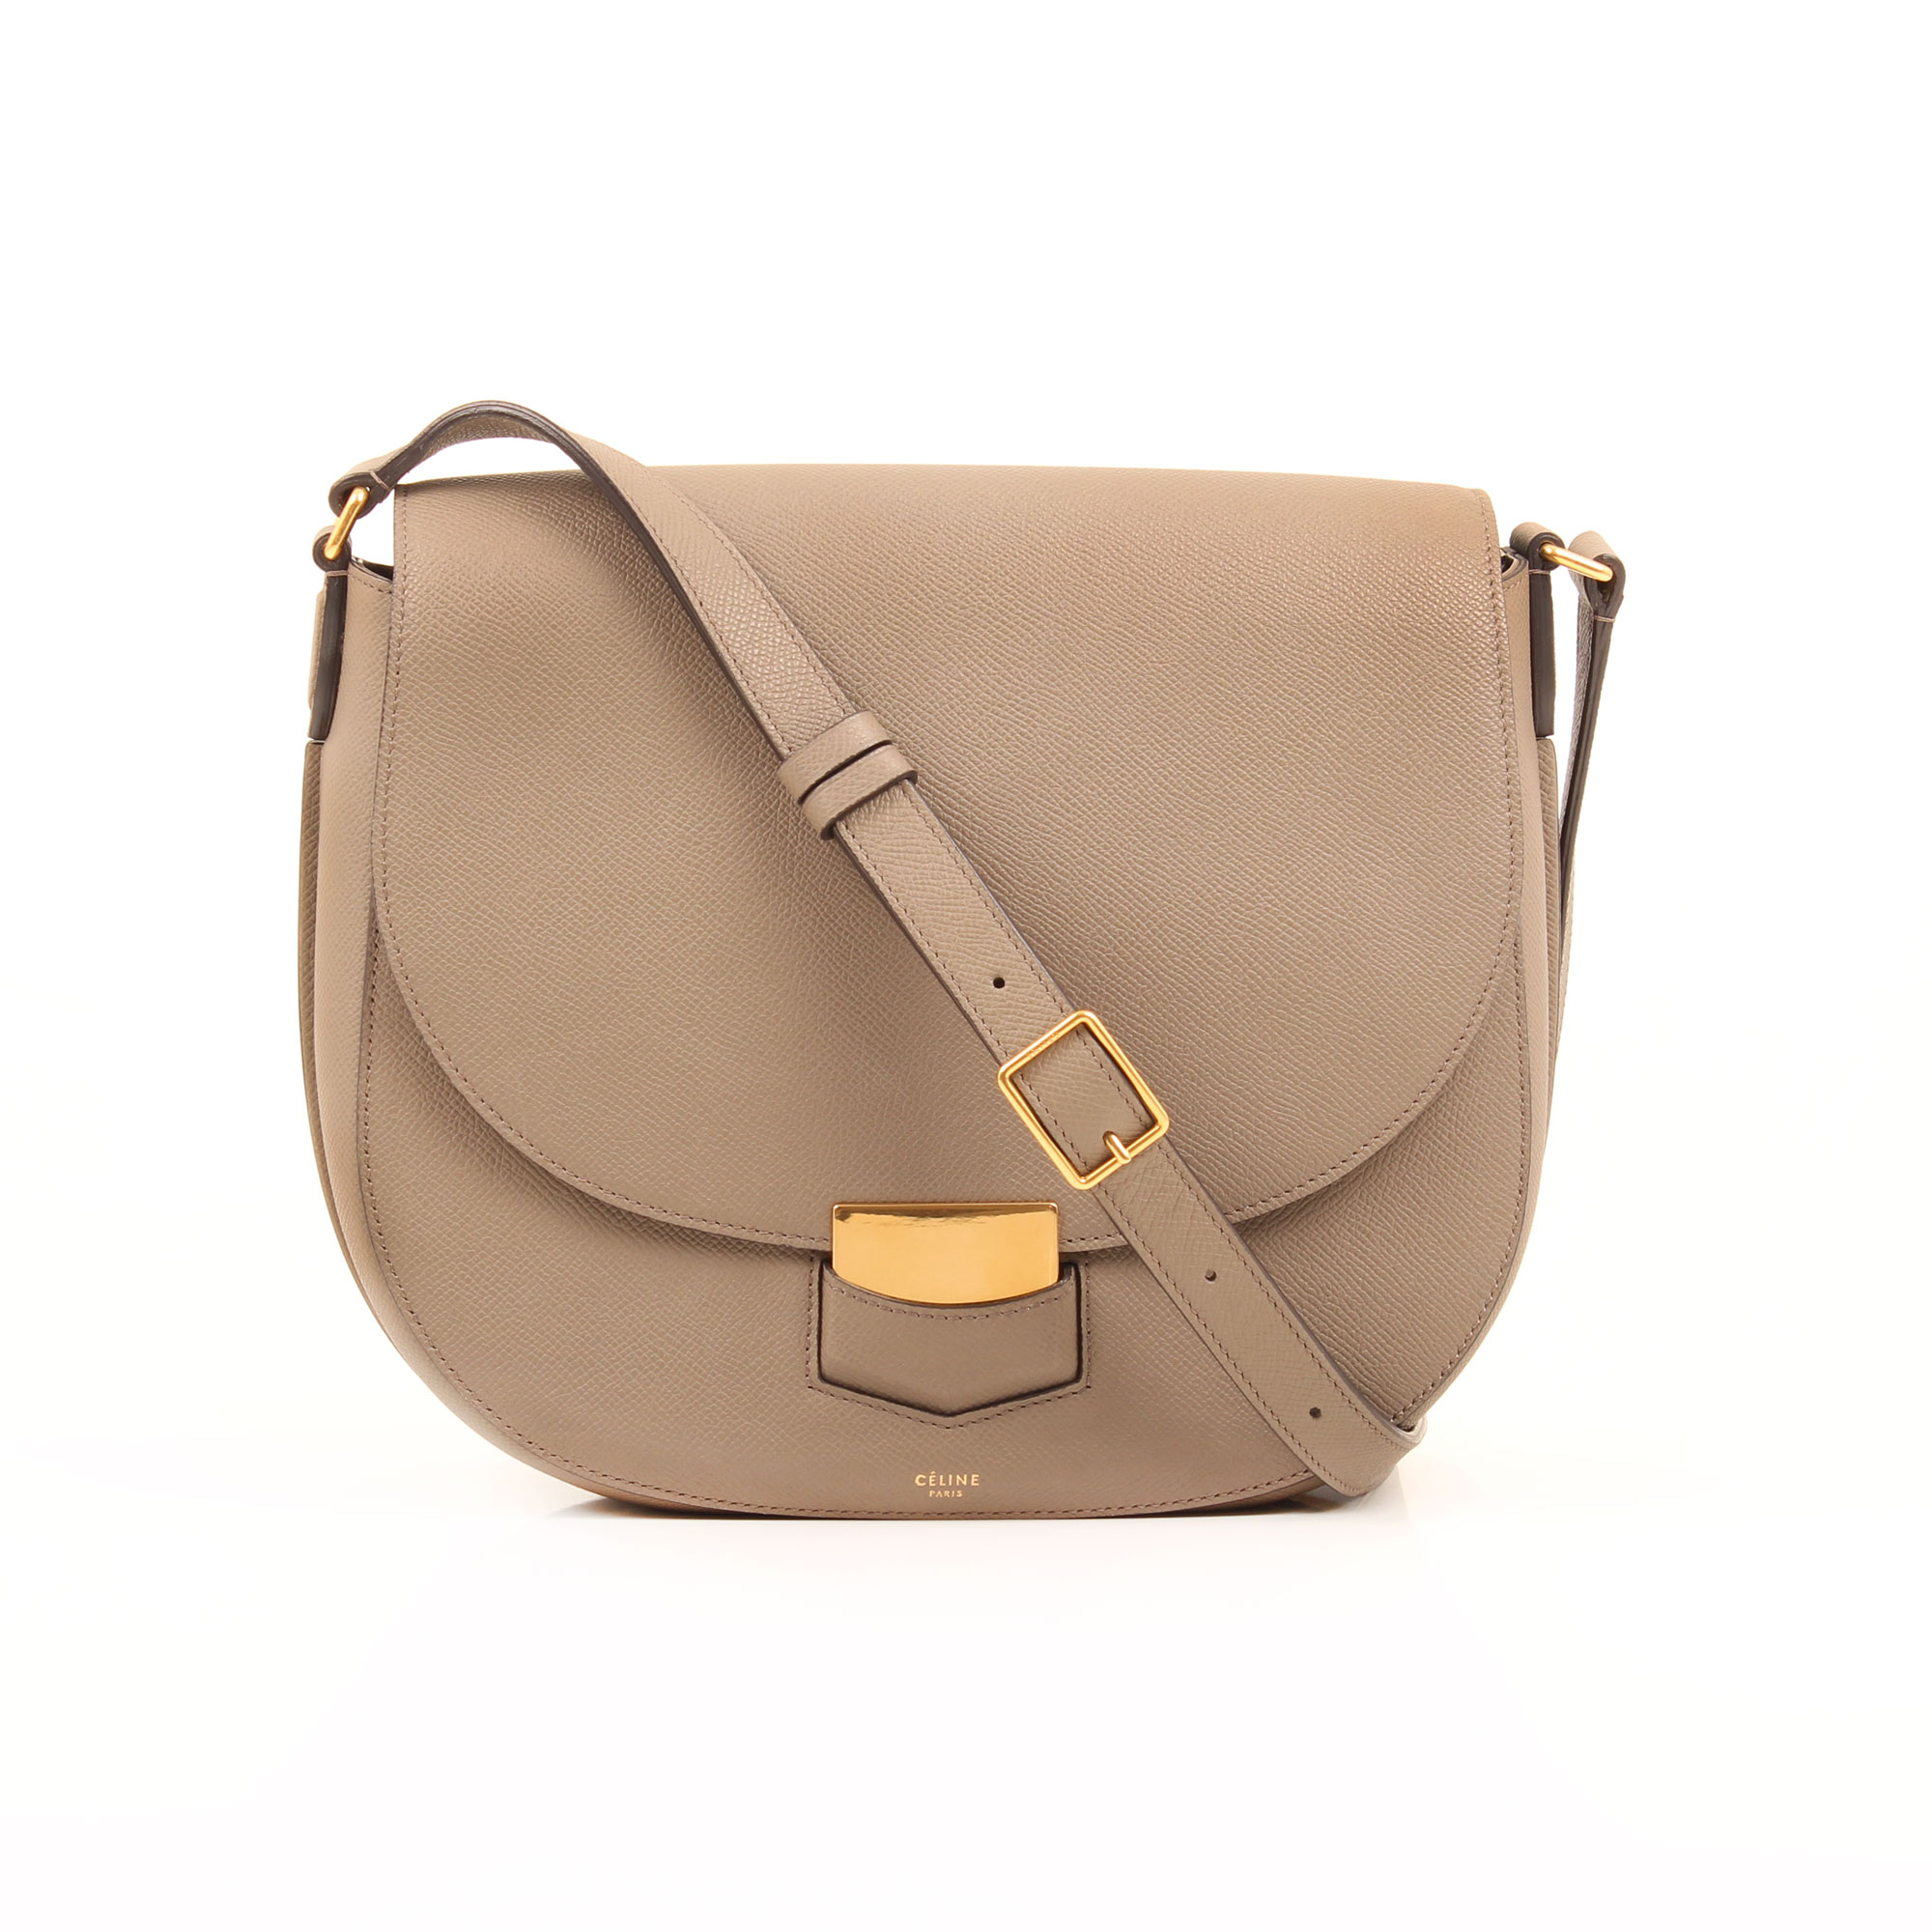 76a72b274501 ... celine trotteur cross body grey grain leather bag. Imagen ...